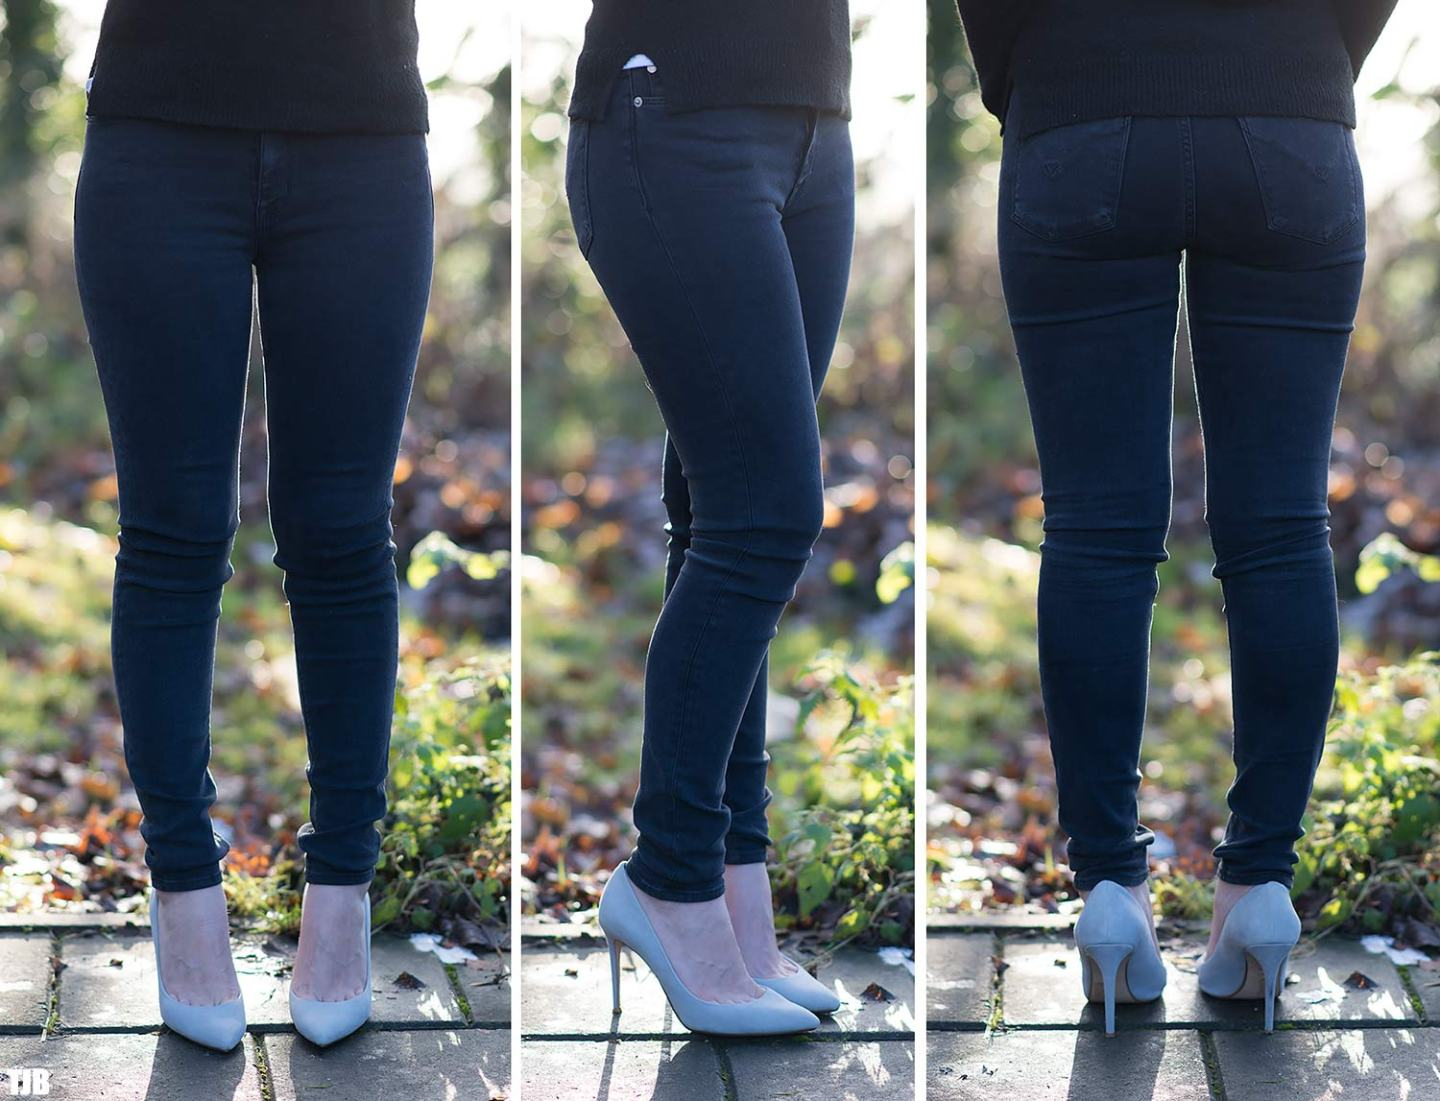 lorna-burford-denim-review-hudson-barbara-jeans